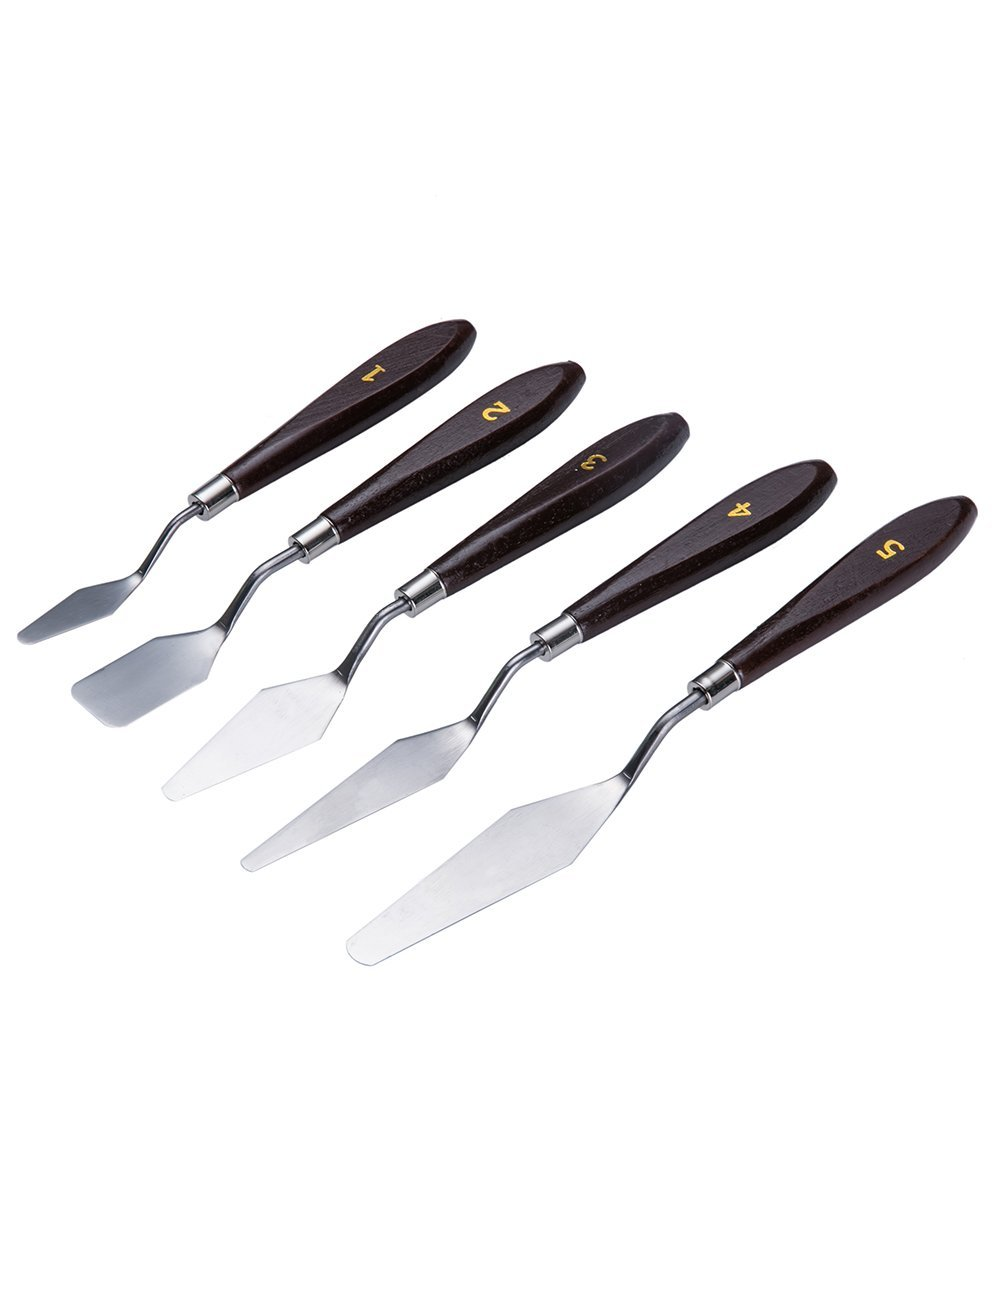 Online color mixer tool - Meeden 5 Pcs Professional Stainless Steel Palette Knife Mixing Scraper Spatula Knives For Artist Oil Painting Color Mixing